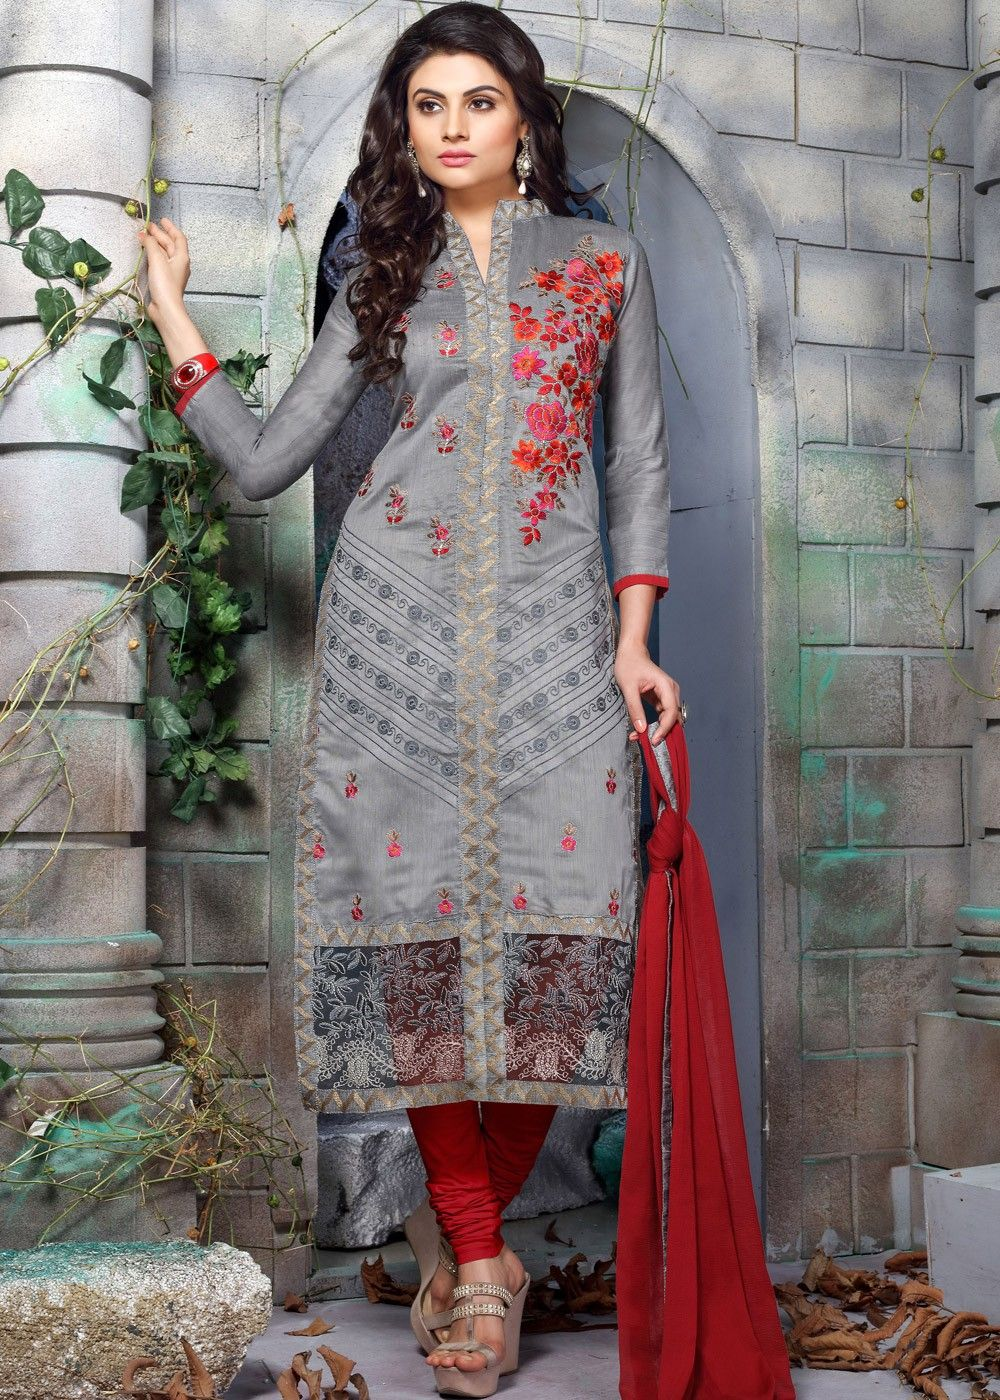 05c16a8c64 Buy Grey Chanderi Cotton Salwar Kameez online, Work: Resham Work, Color:  Grey, Occassion: Casual, Fabric: Chanderi, Style: Straight Cut, 1187SL01